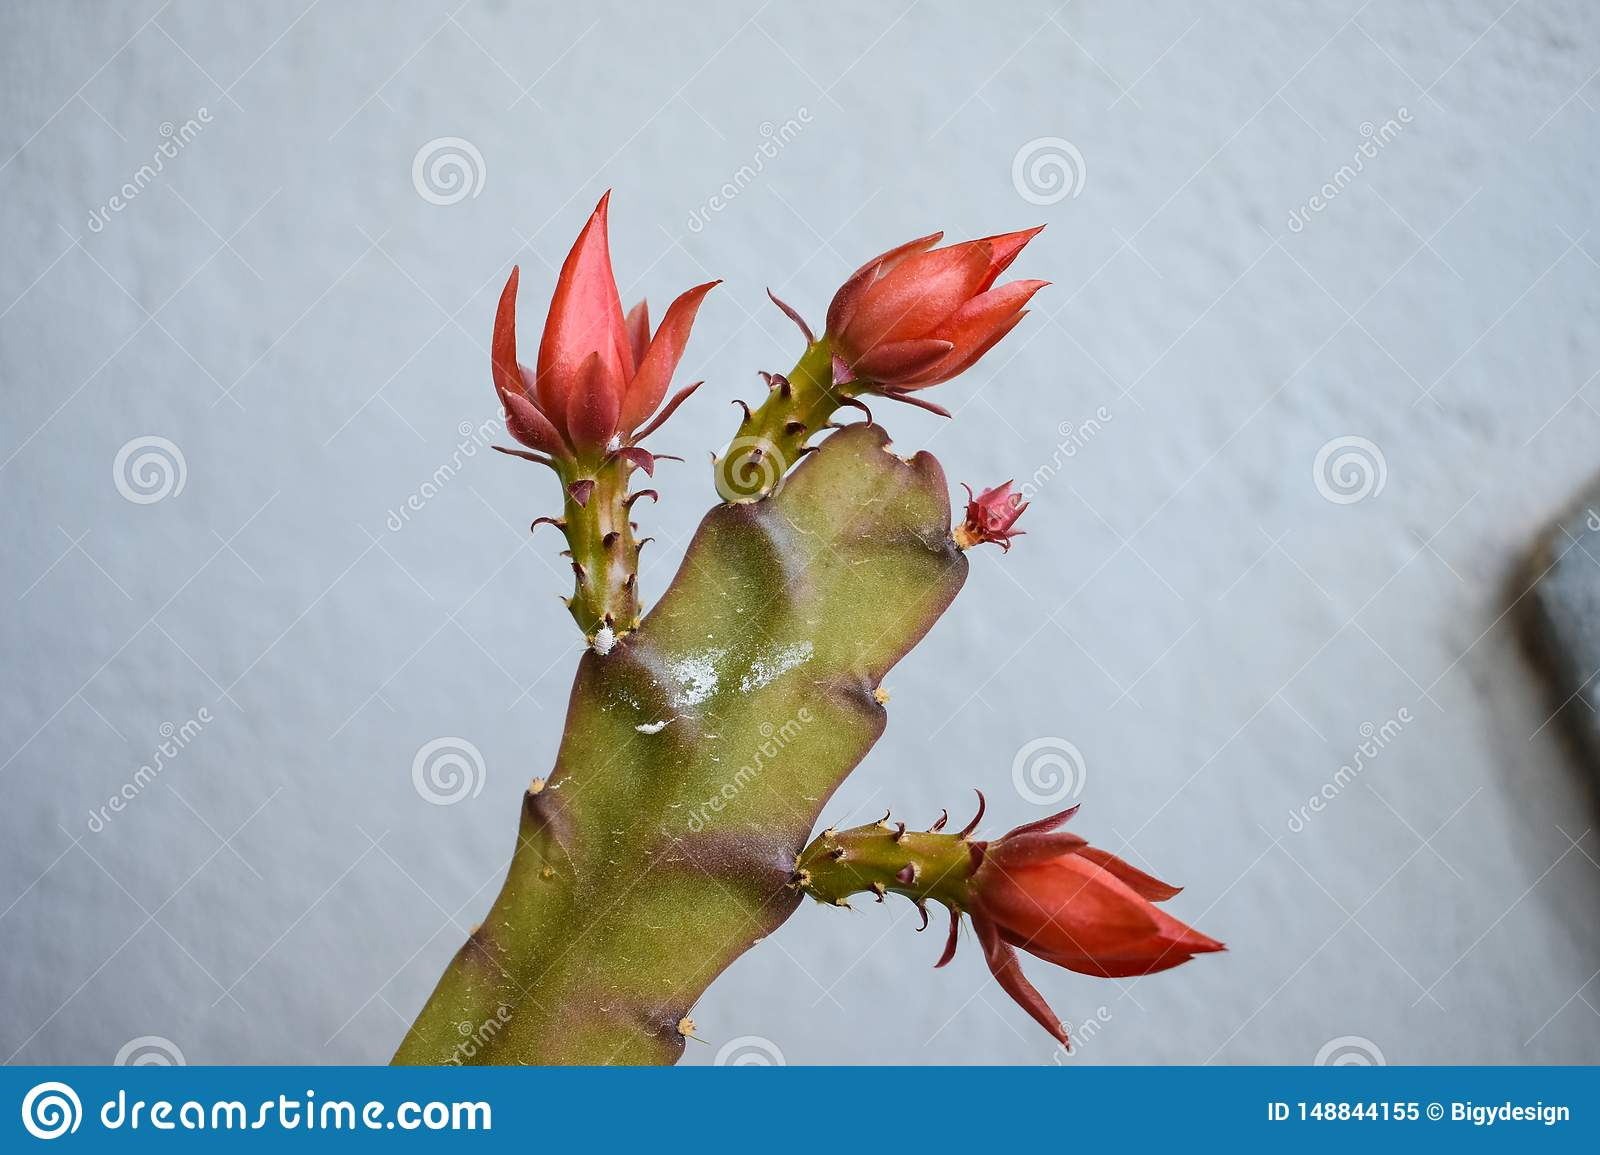 Blooming cactus flower. summer flowers